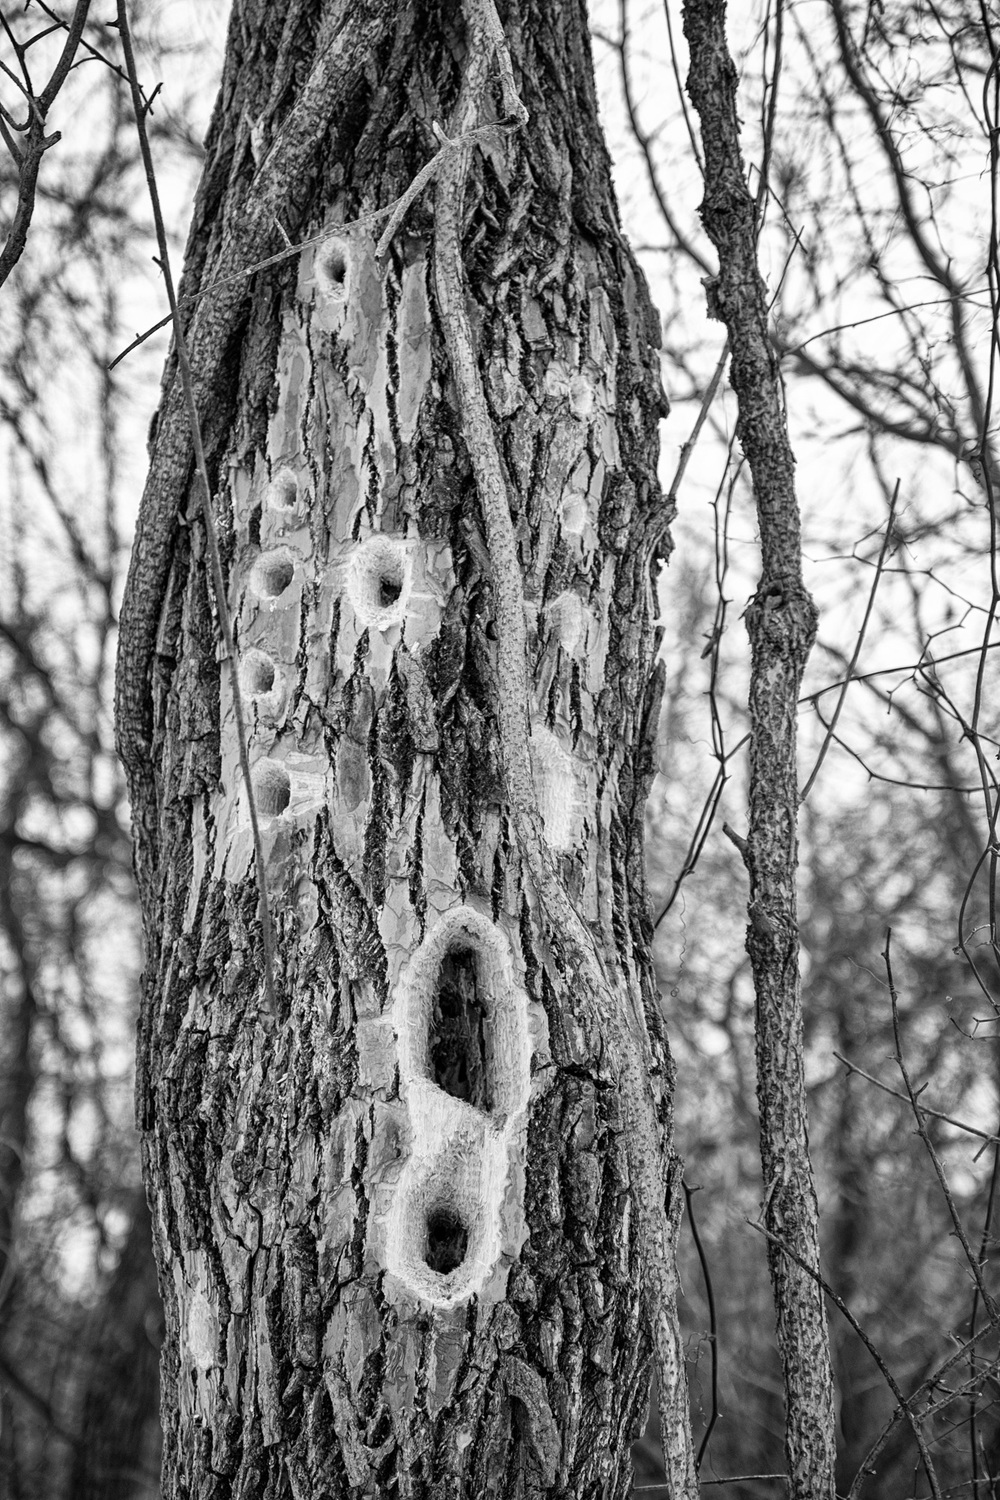 We spotted the work of one of the woodpeckers in the area. These are REALLY big holes! Must have been a lot of headbanging.